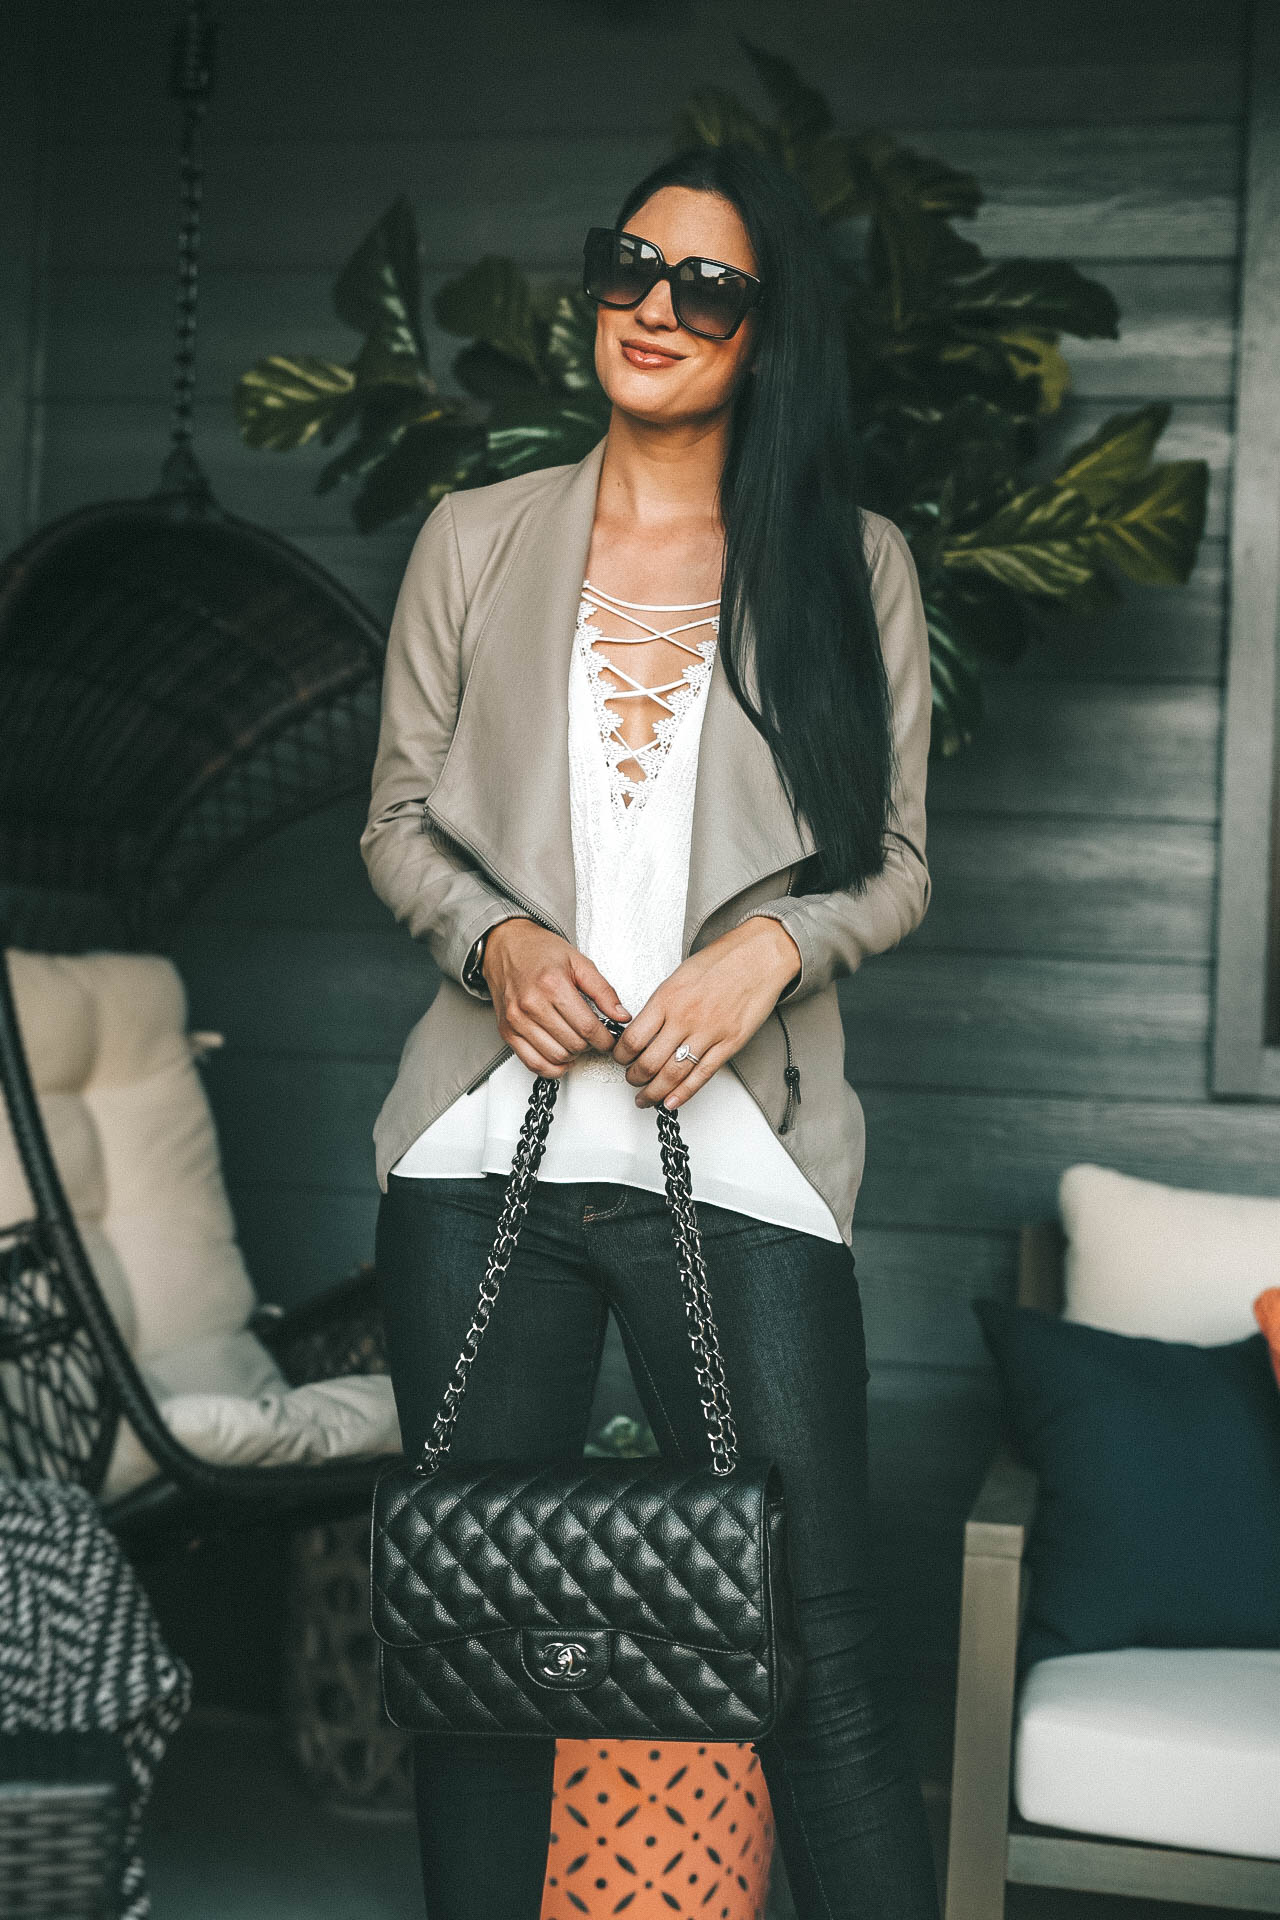 DTKAustin shares her favorite lace-front tank top from Nordstrom. Perfect transitional outfit into Fall on a budget. Chanel Black Caviar Jumbo Bag with Christian Louboutin Leopard Heels.